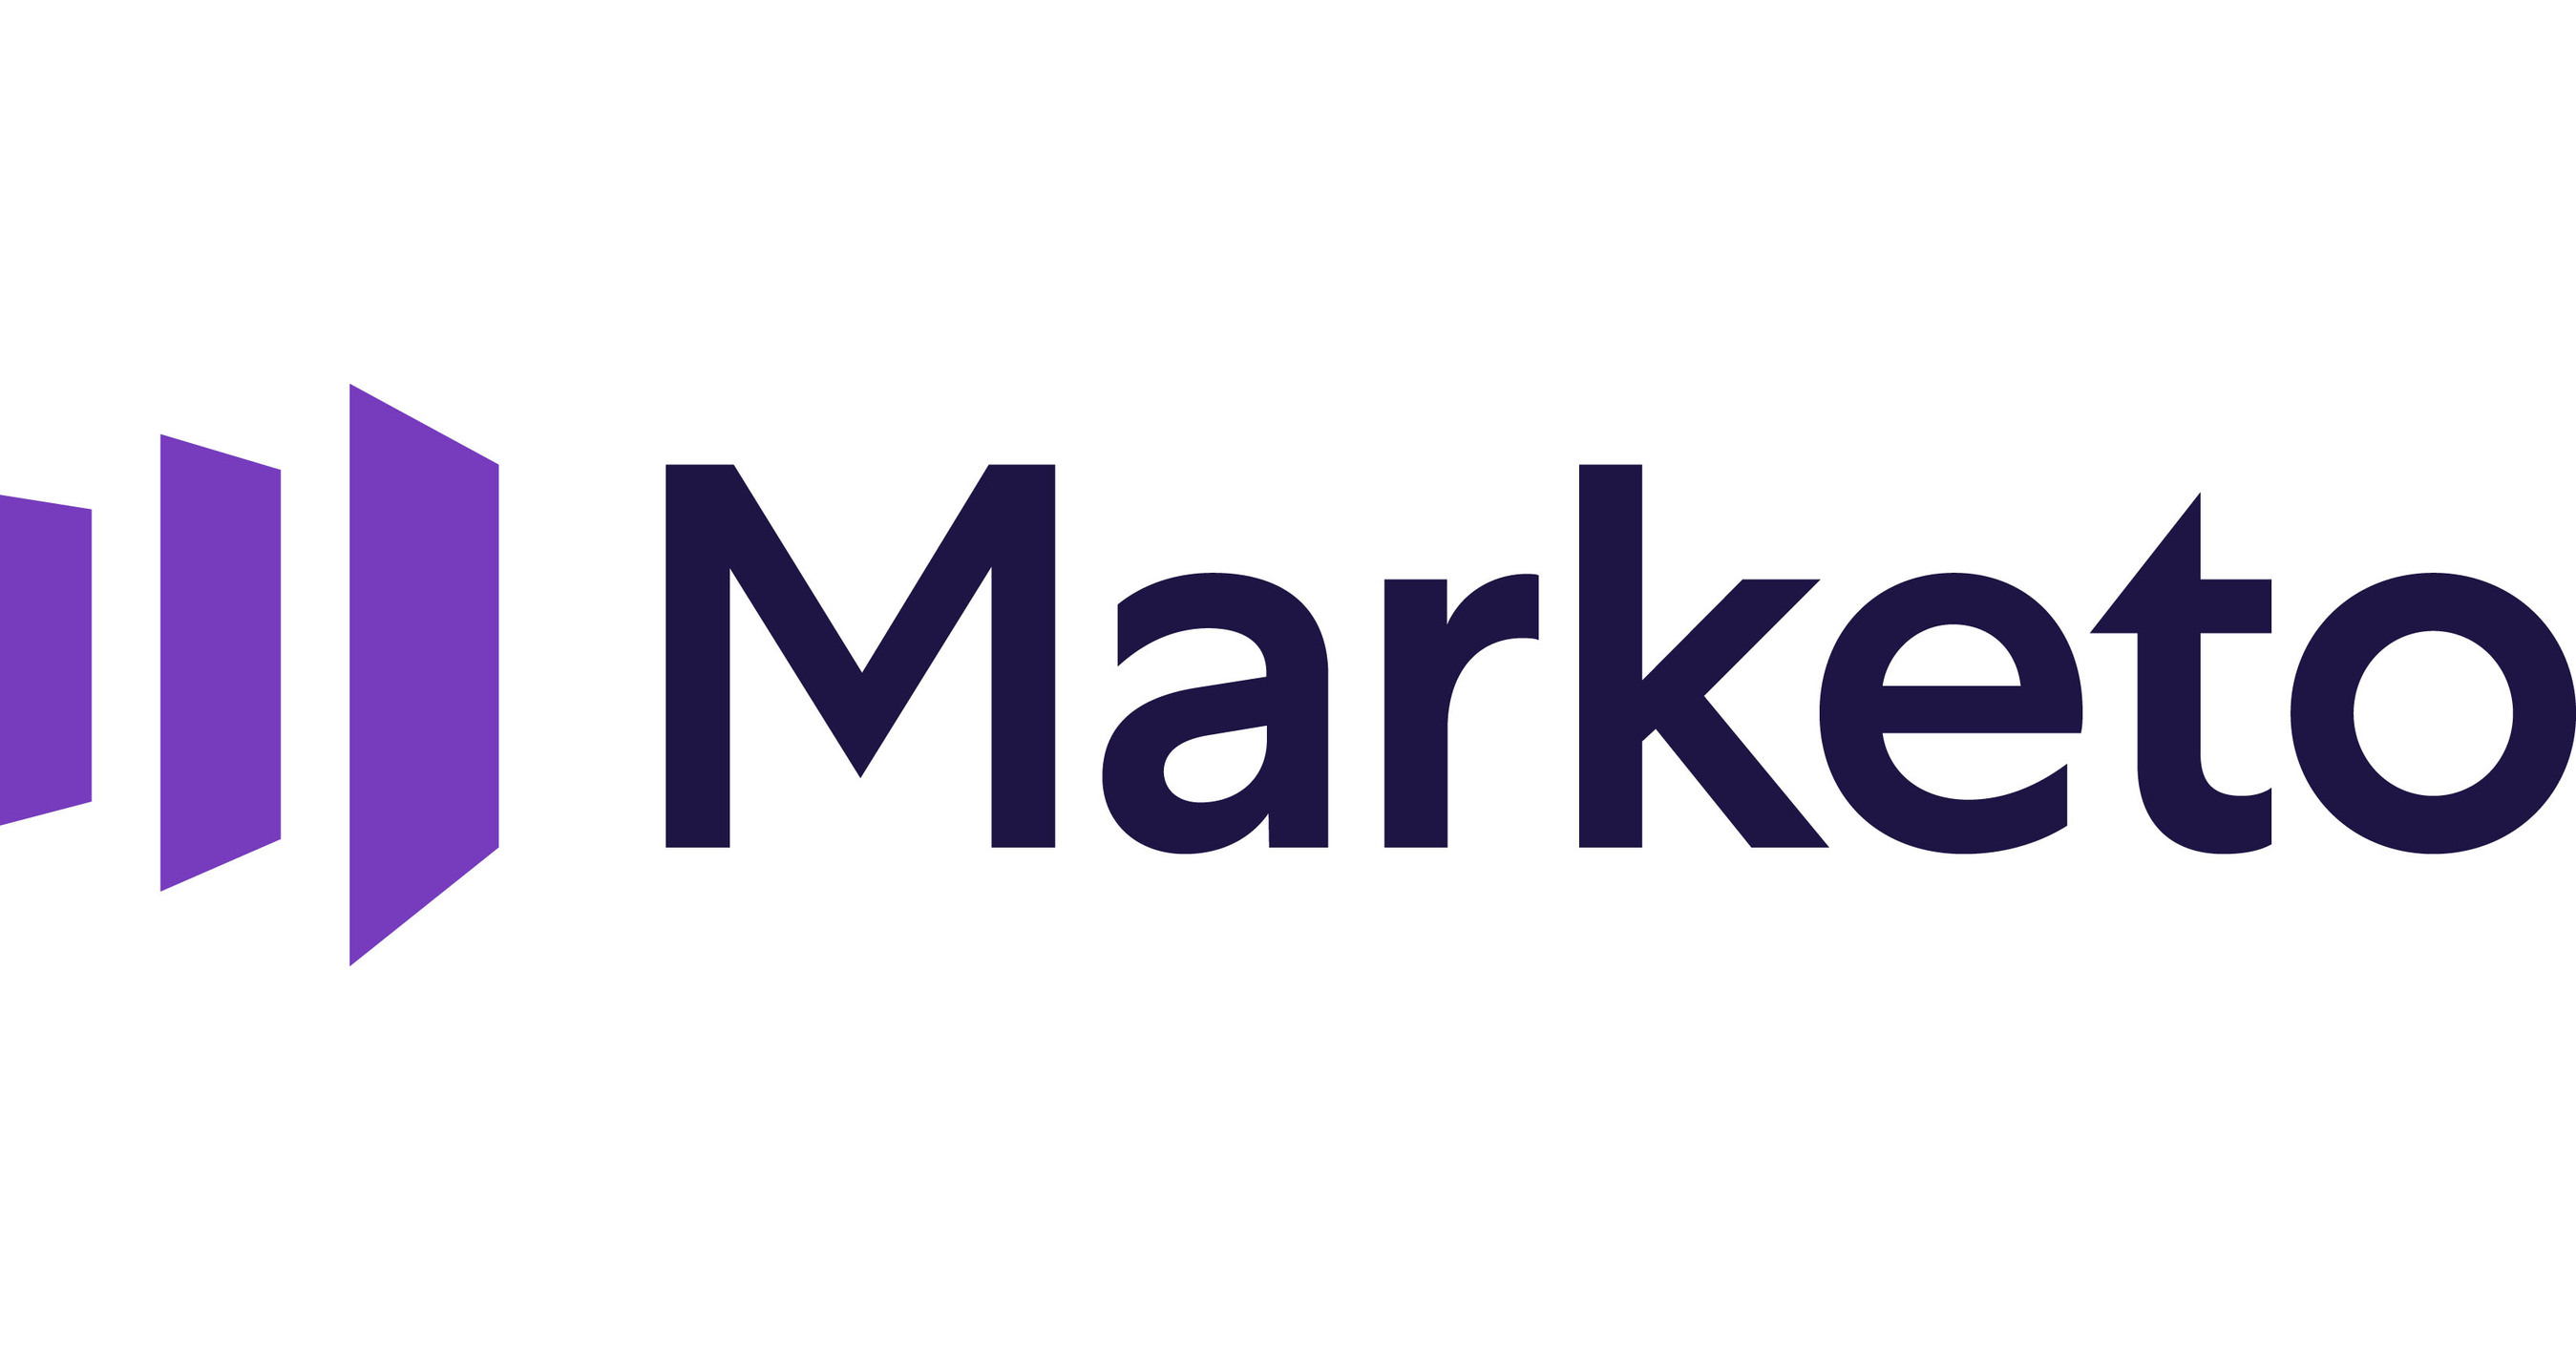 Personal data is stored across Marketo